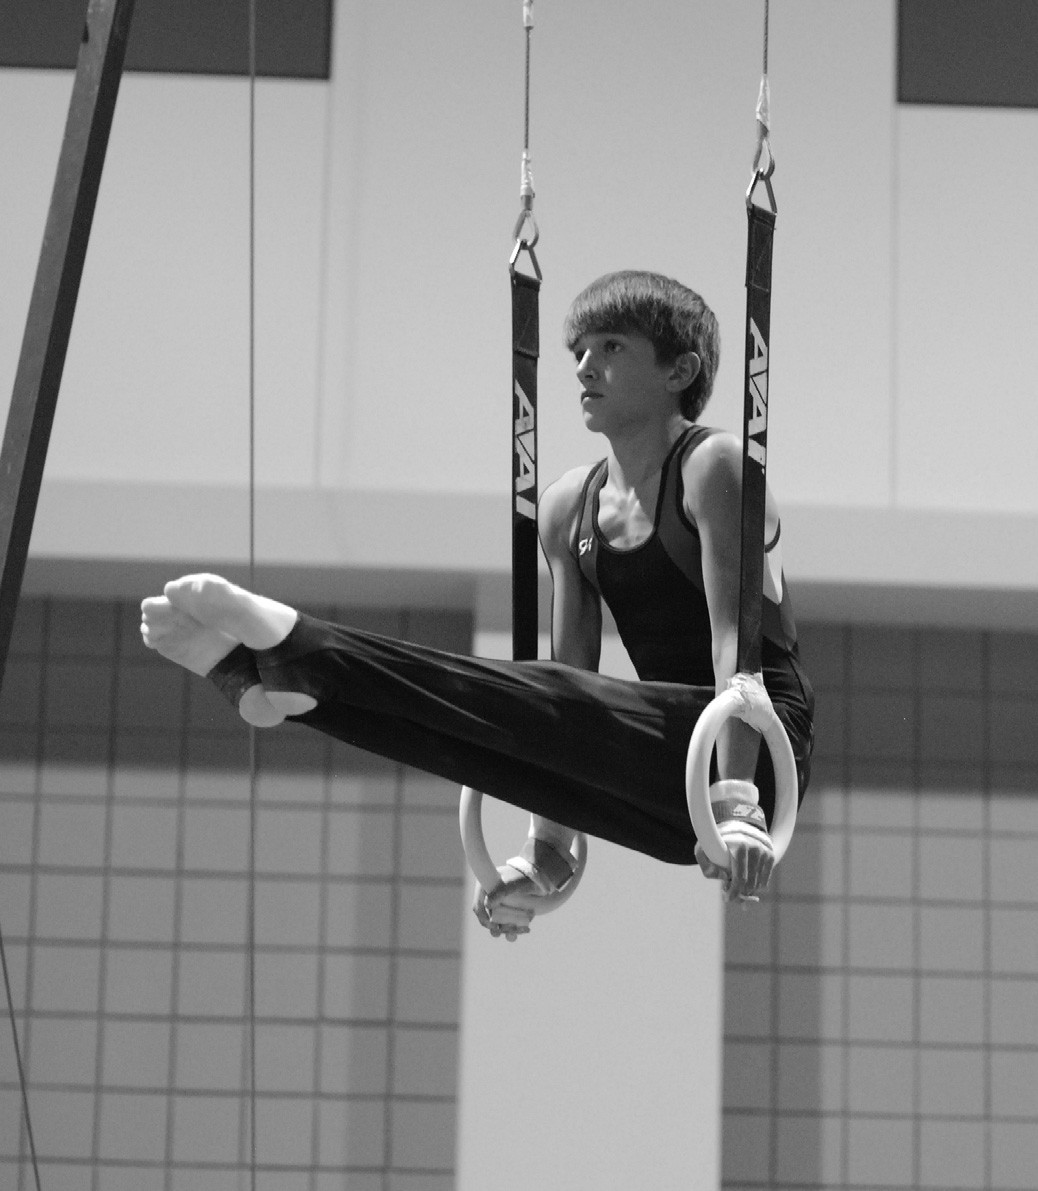 Zachary Beason, 12, won a bronze medal at the Region 8 Men's Gymnastics Championships in Raleigh, N.C., on April 14. He finished third overall in a field of 54 Level 7 boys competing in his group. All had qualified as top competitors from individual state championships in seven southern states: Alabama, North Carolina, South Carolina, Florida, Georgia, Mississippi, and Tennessee. Beason finished sixth on high bar, third on floor exercise, third on pommel horse, second on steel rings, and third overall. He is the Alabama state champion for 2012, and was also state champion last year competing at Level 6. He is the son of Randy and Debra Beason, owners of Neely Arts Center in Oneonta, who say Zach works very hard 'even when the coach is not looking.' Sign of a true competitor – it's become part of his character. Zachary has been involved in gymnastics for only three years, a real short-timer in a sport where many start at age 5 or 6. – Ron Gholson